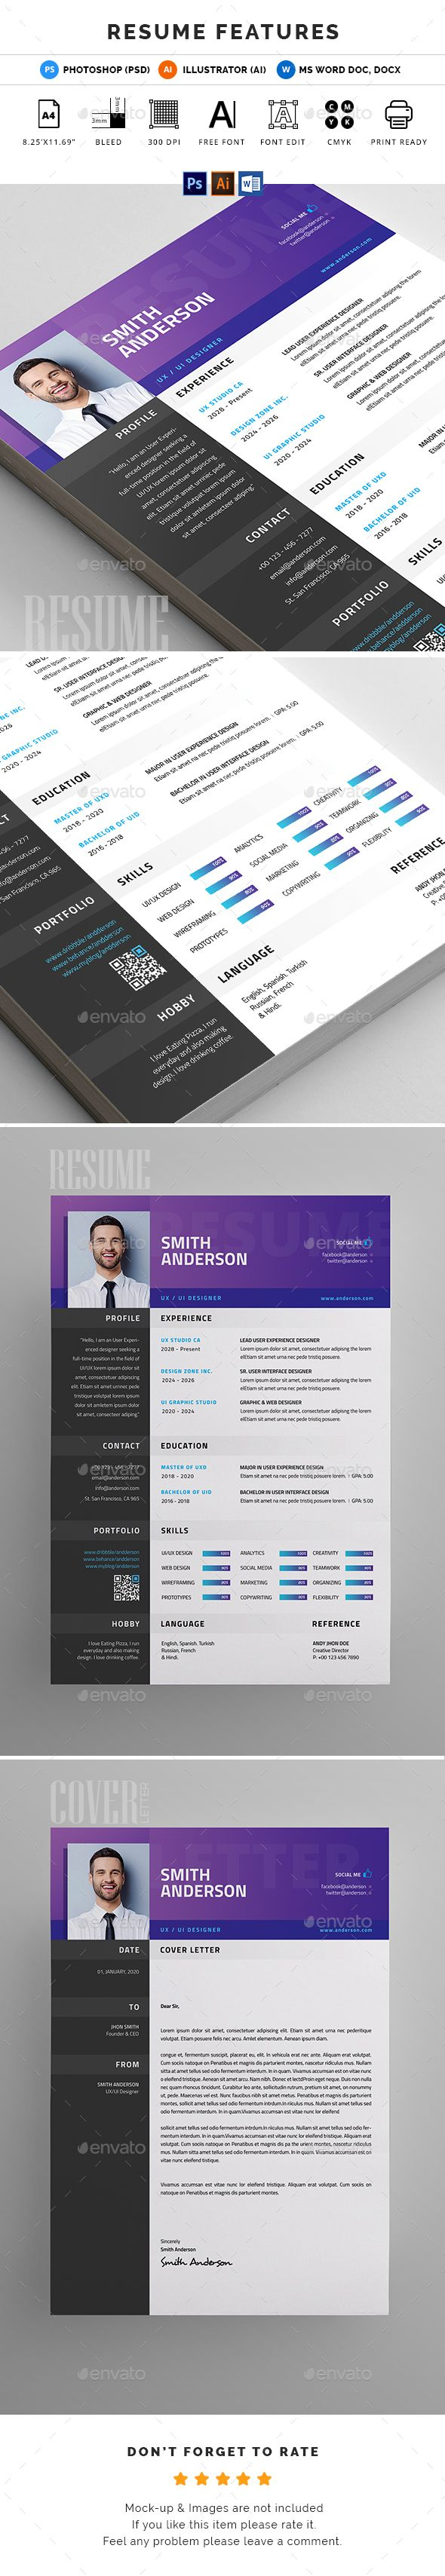 Resume FEATURES:      Easy customizable and editable     300 DPI CMYK Print Ready!     A4 size 8.27 X 11.69 (with Bleed) settings     100% Layered and Full Editable     02 PSD Files included     02 Ai Files included     04 Word Files (DOC & DOCX) included     Help Guide Included     Print Ready Format     Images are not included in the download.